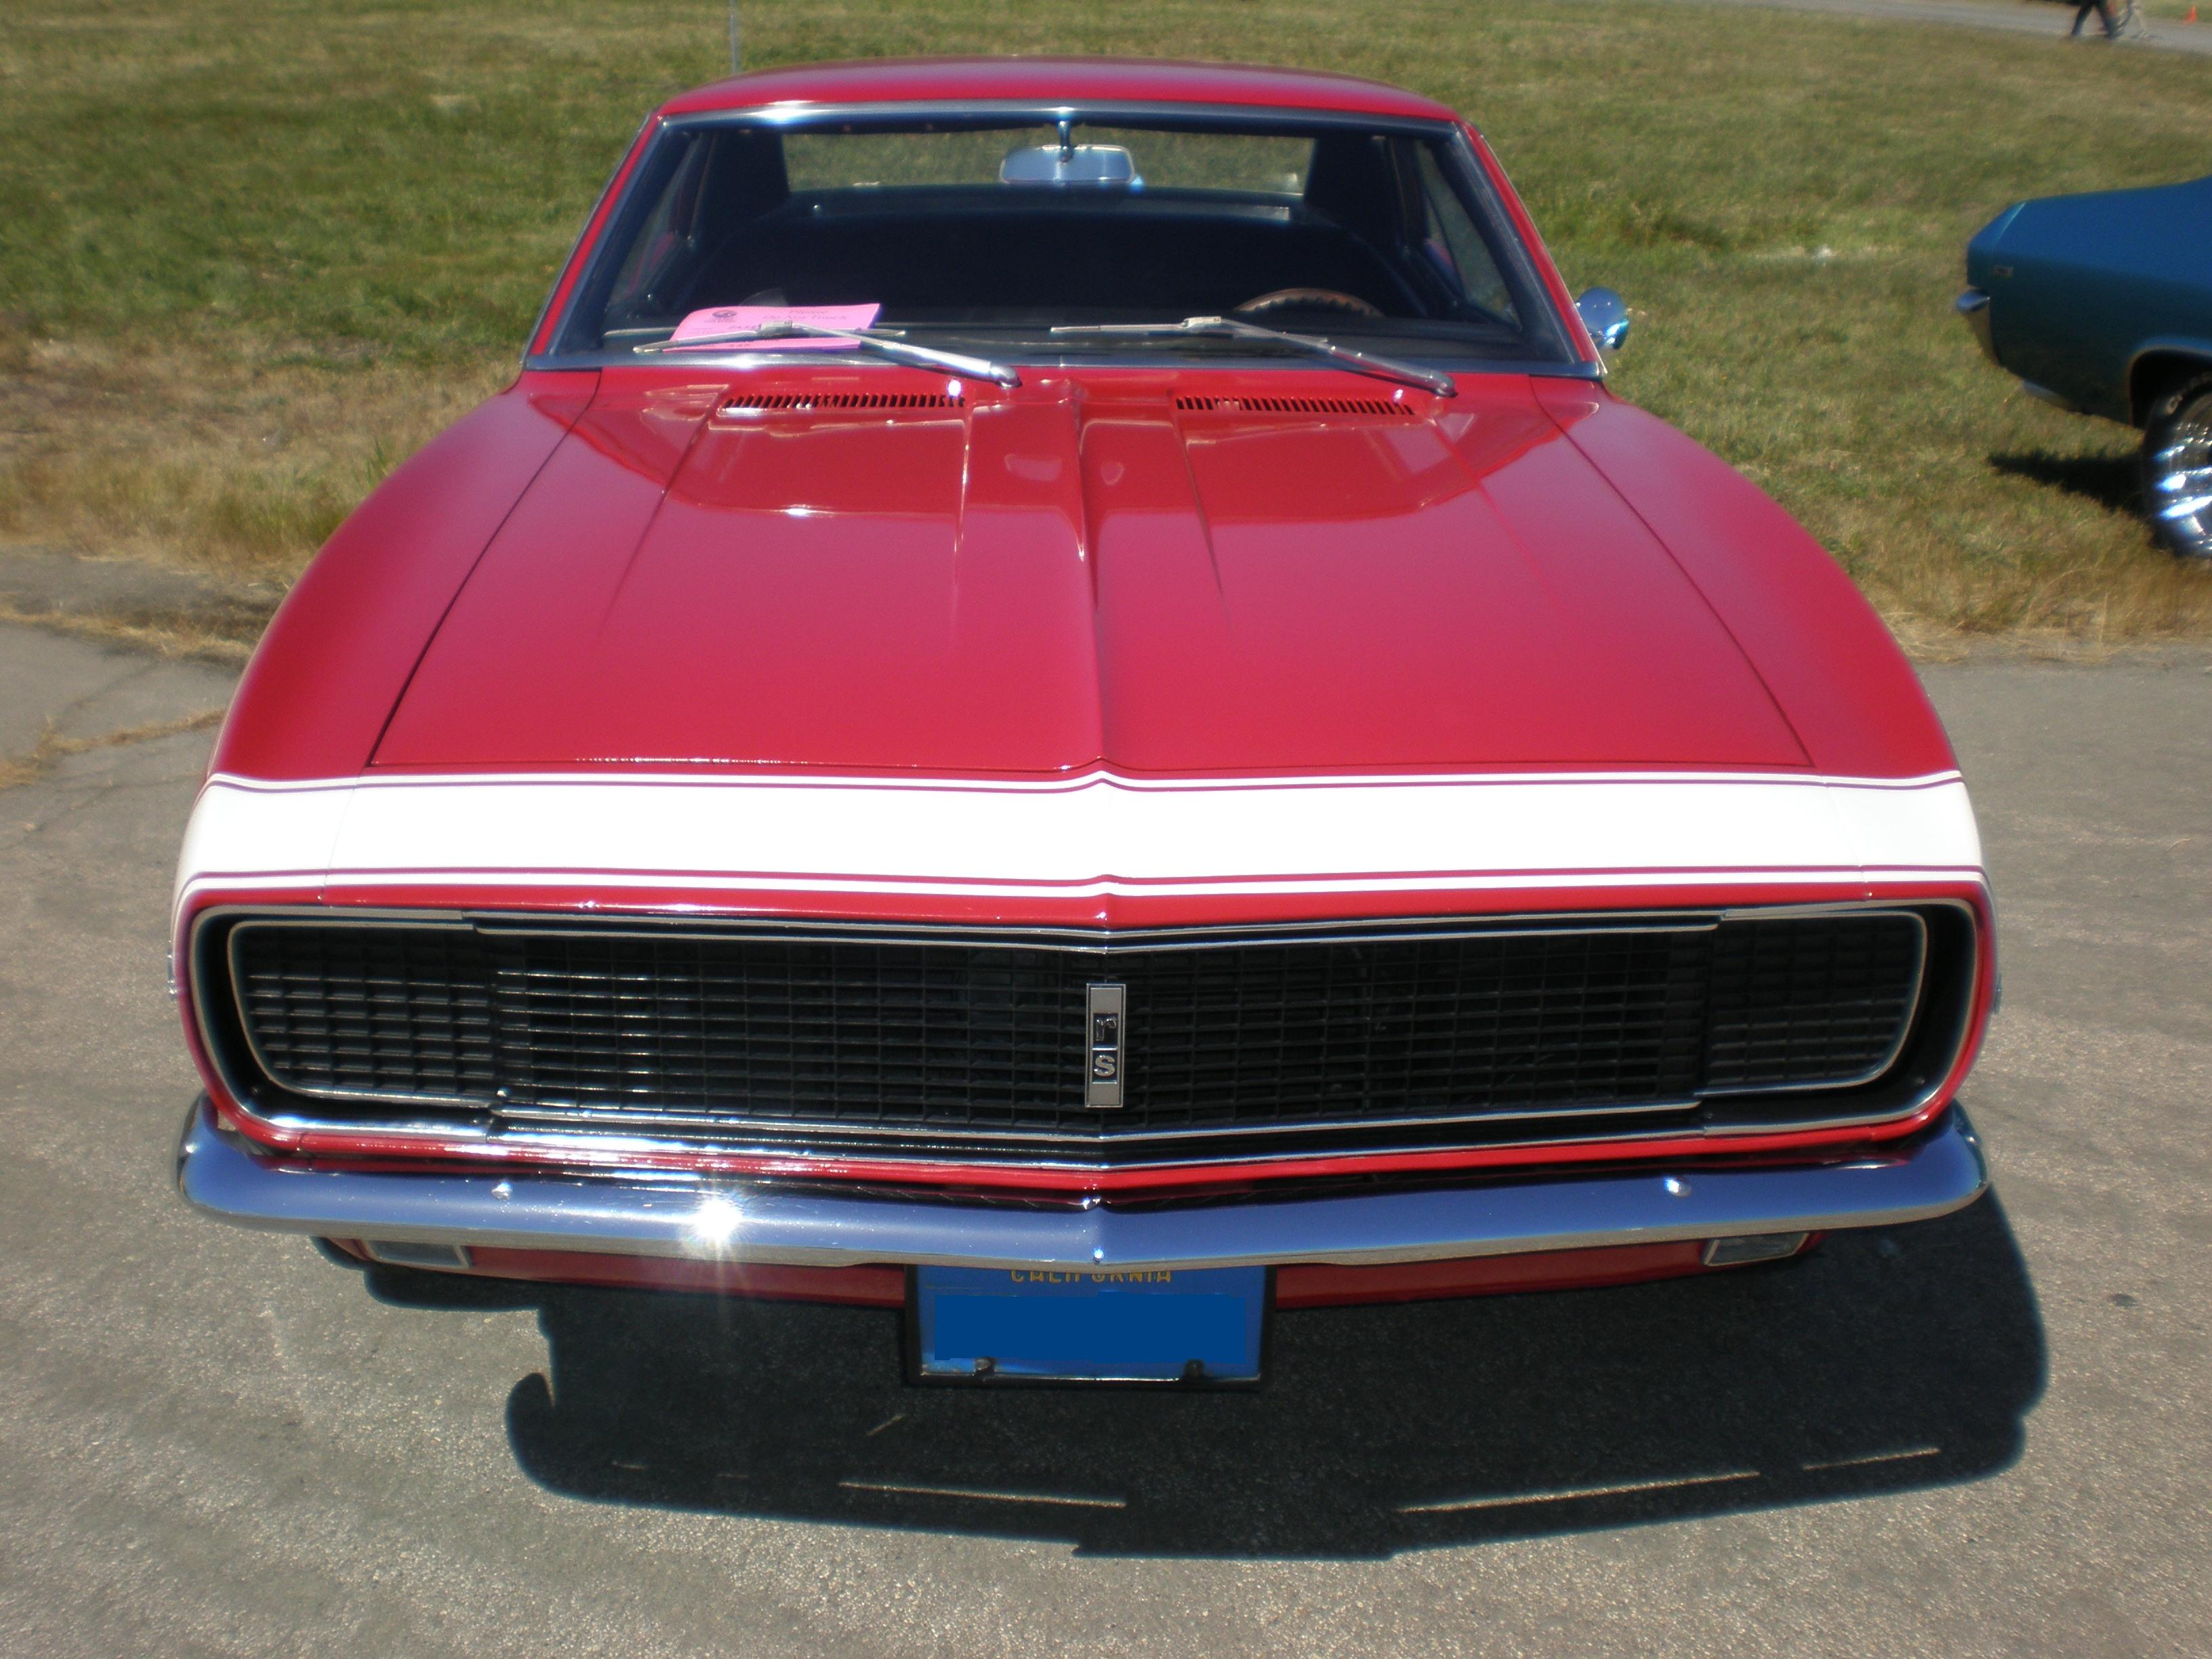 File:1967 red Chevrolet Camaro RS front.JPG